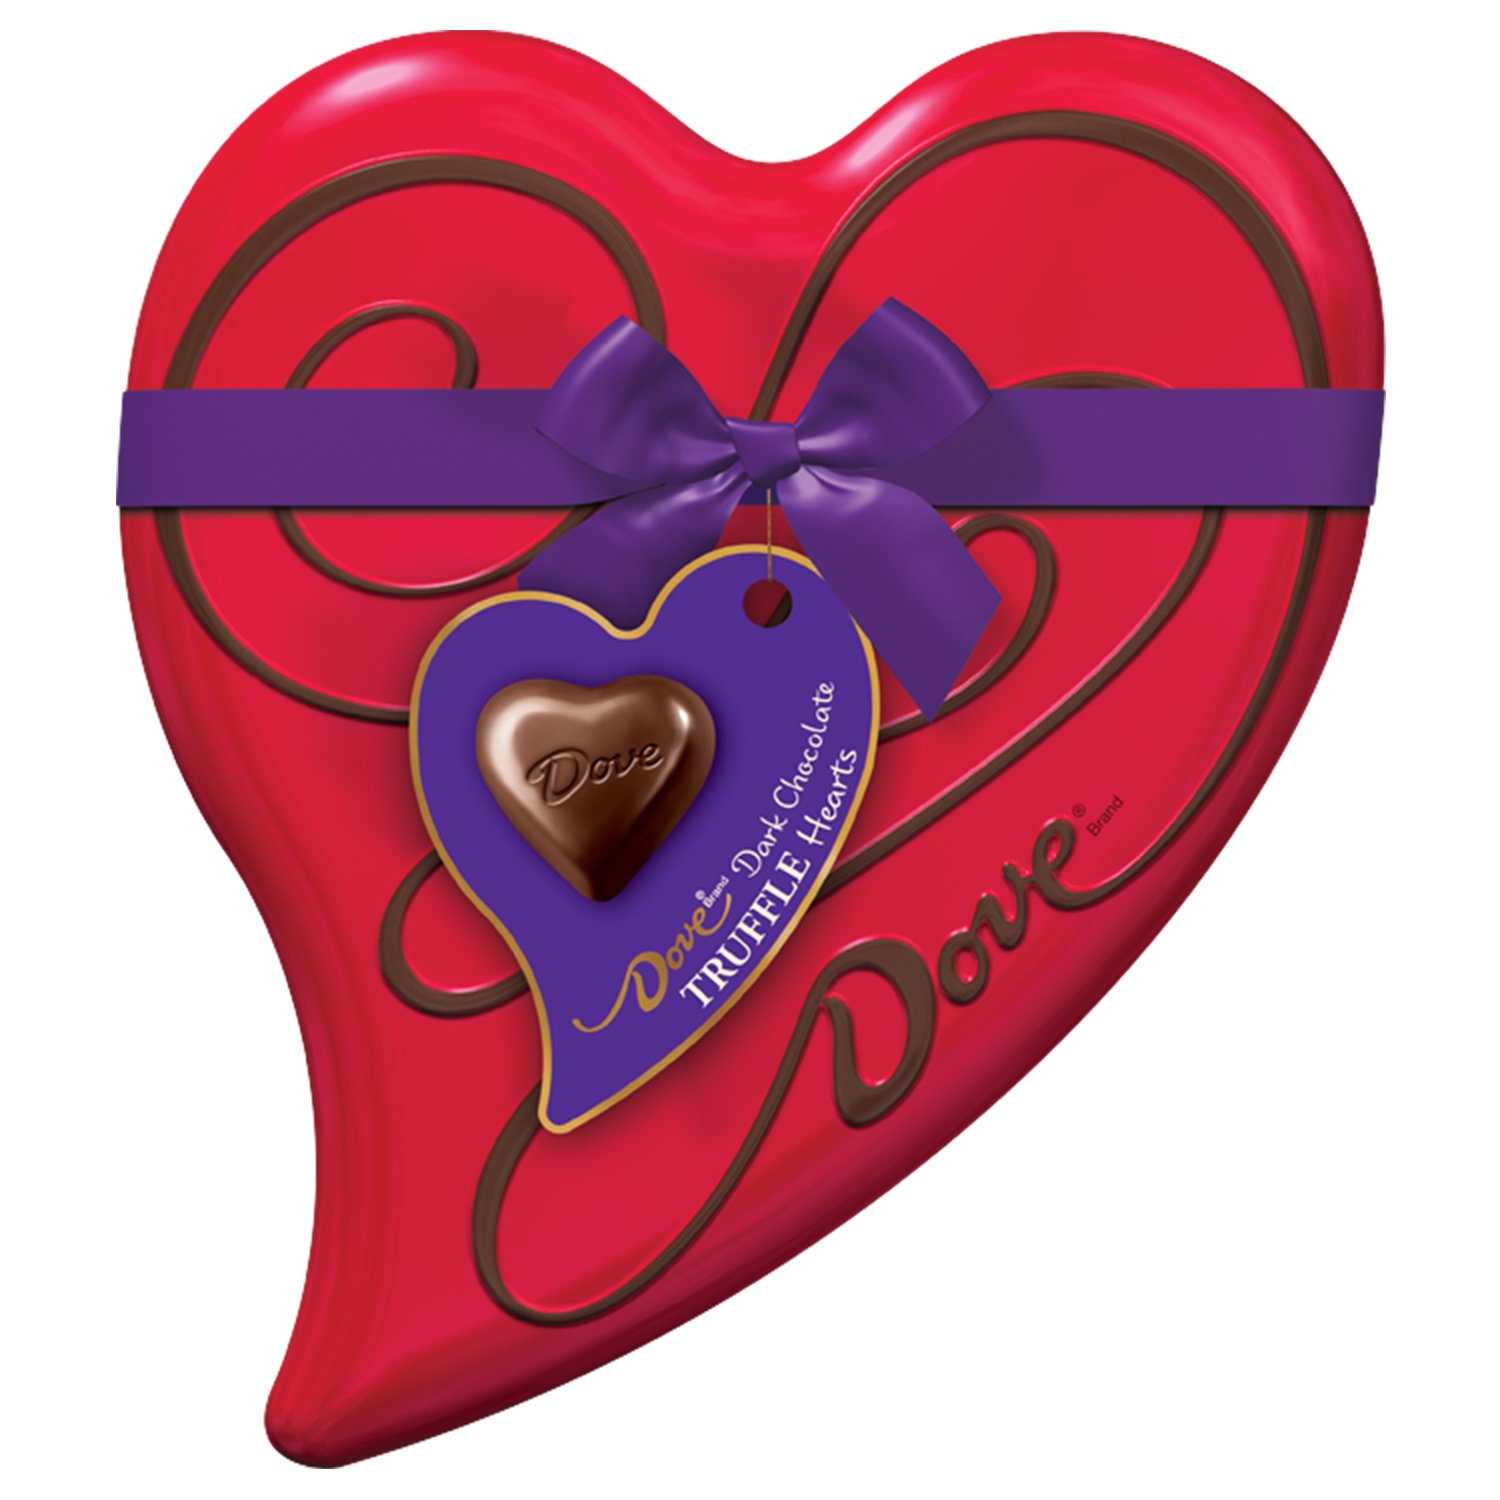 DOVE Valentine's Dark Chocolate Truffles Heart Gift Box 6.5-Ounce Tin